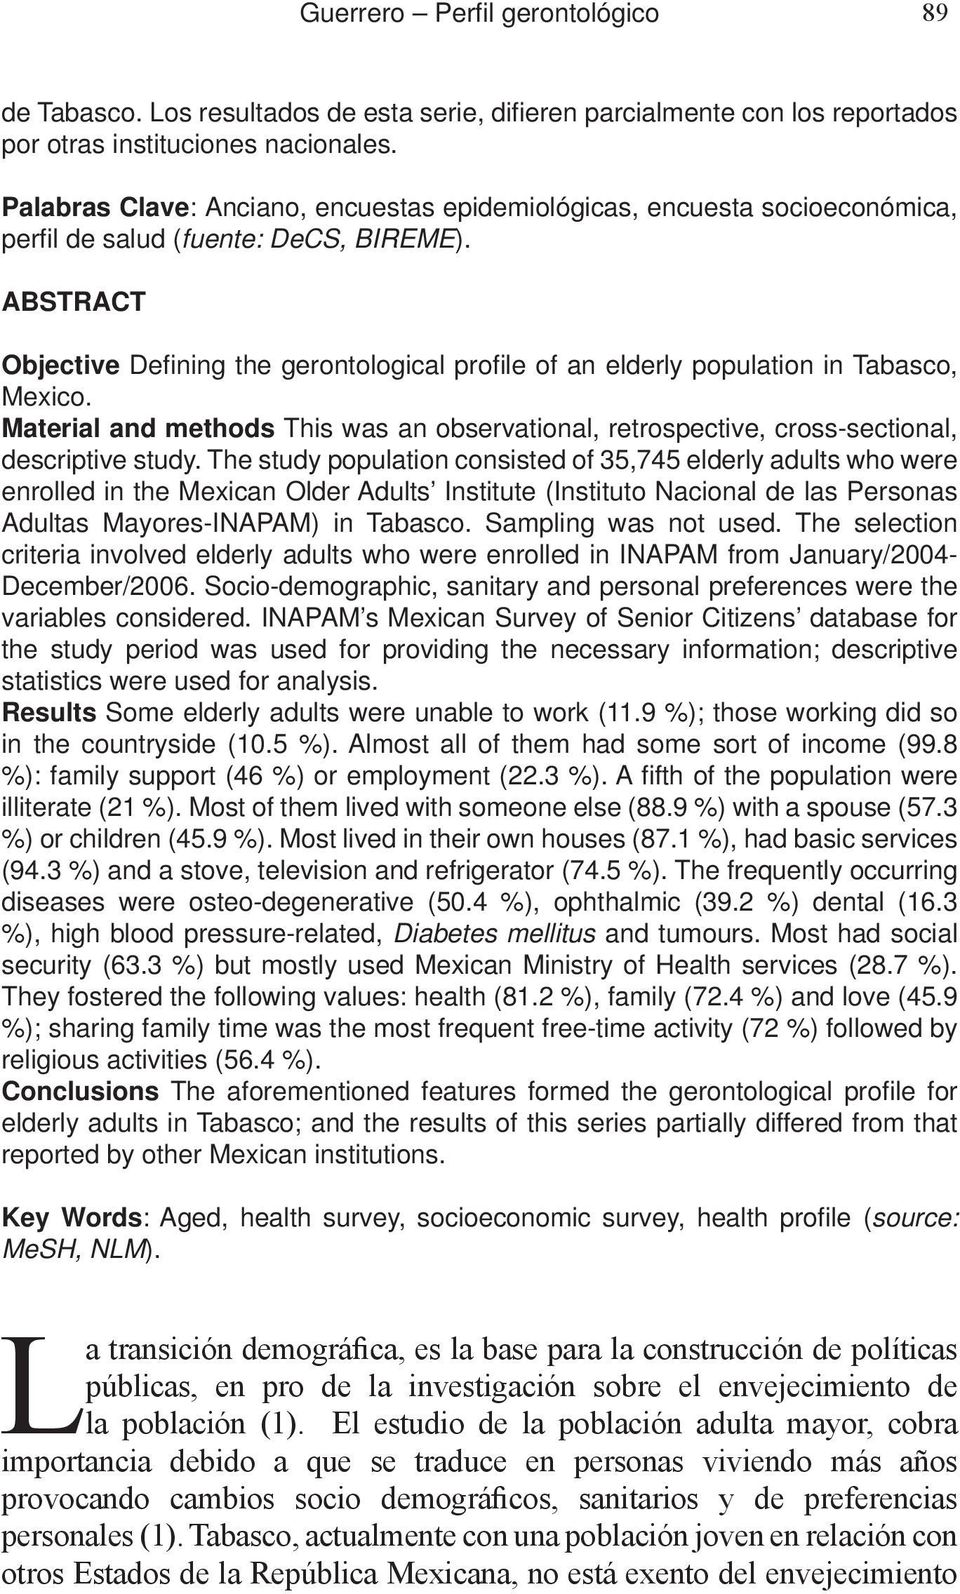 ABSTRACT Objective Defining the gerontological profi le of an elderly population in Tabasco, Mexico. Material and methods This was an observational, retrospective, cross-sectional, descriptive study.